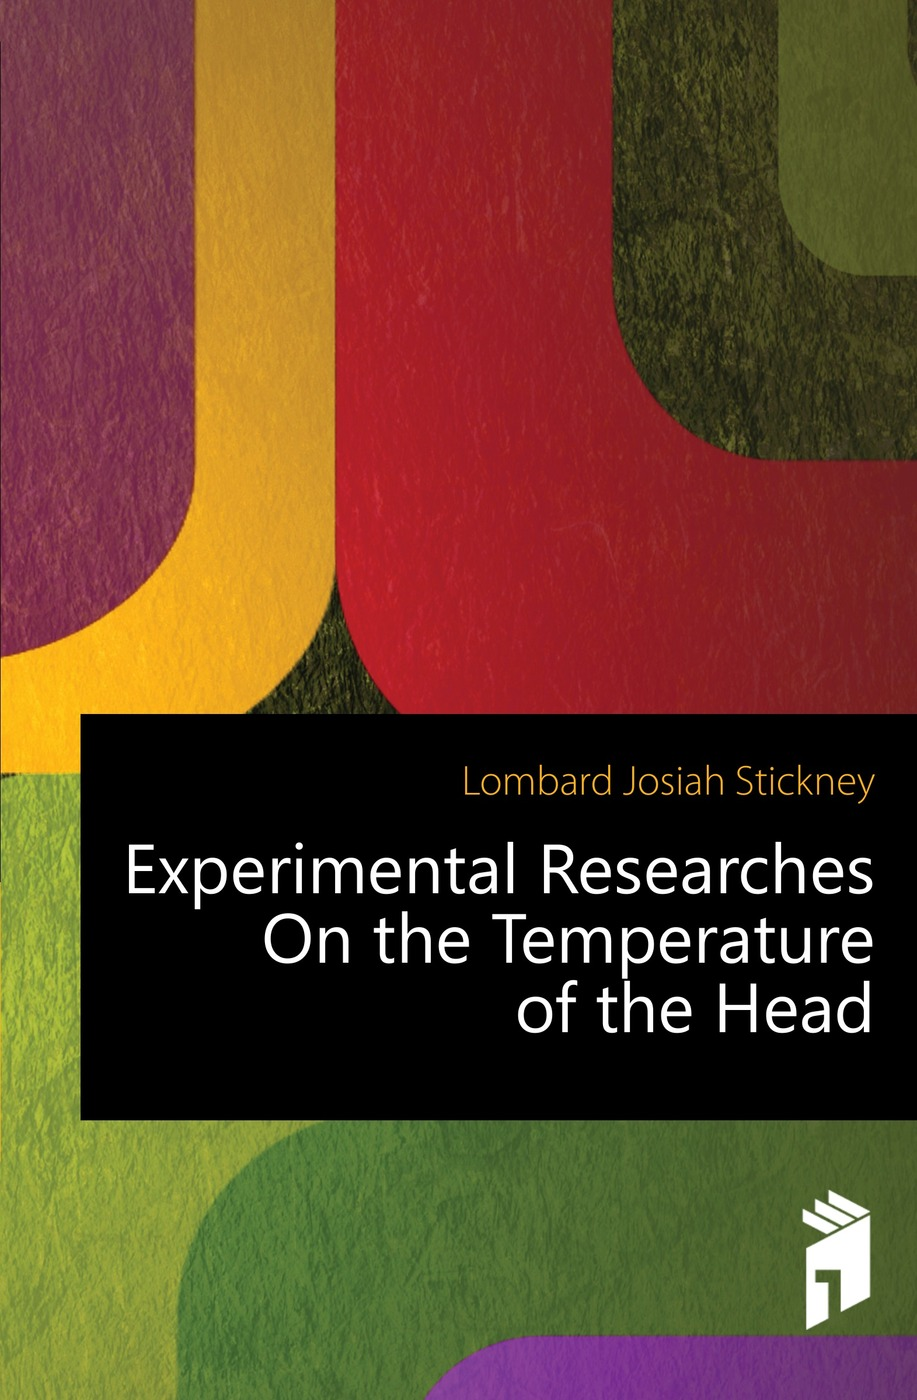 Lombard Josiah Stickney Experimental Researches On the Temperature of Head